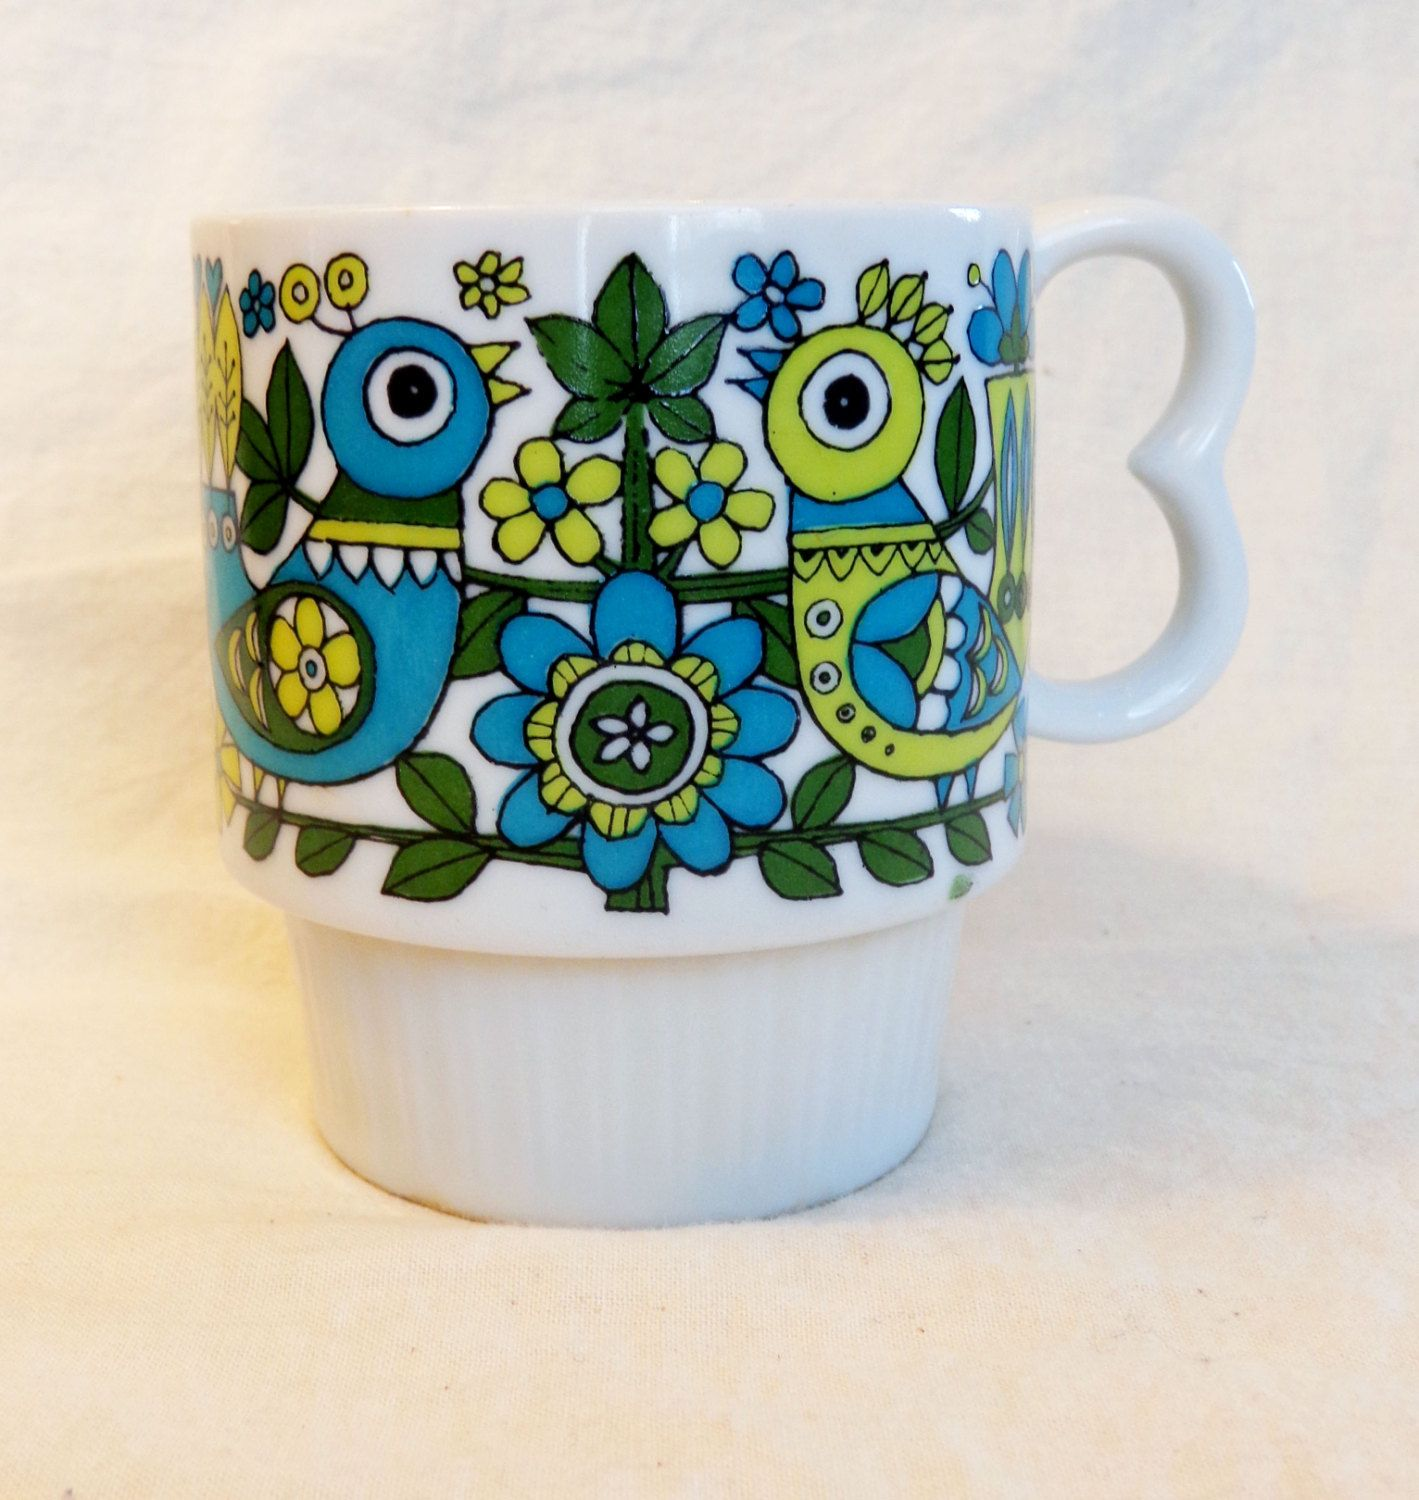 Retro Floral Print Coffee Cup 1960 S Or 70 S Mug With Blue Green